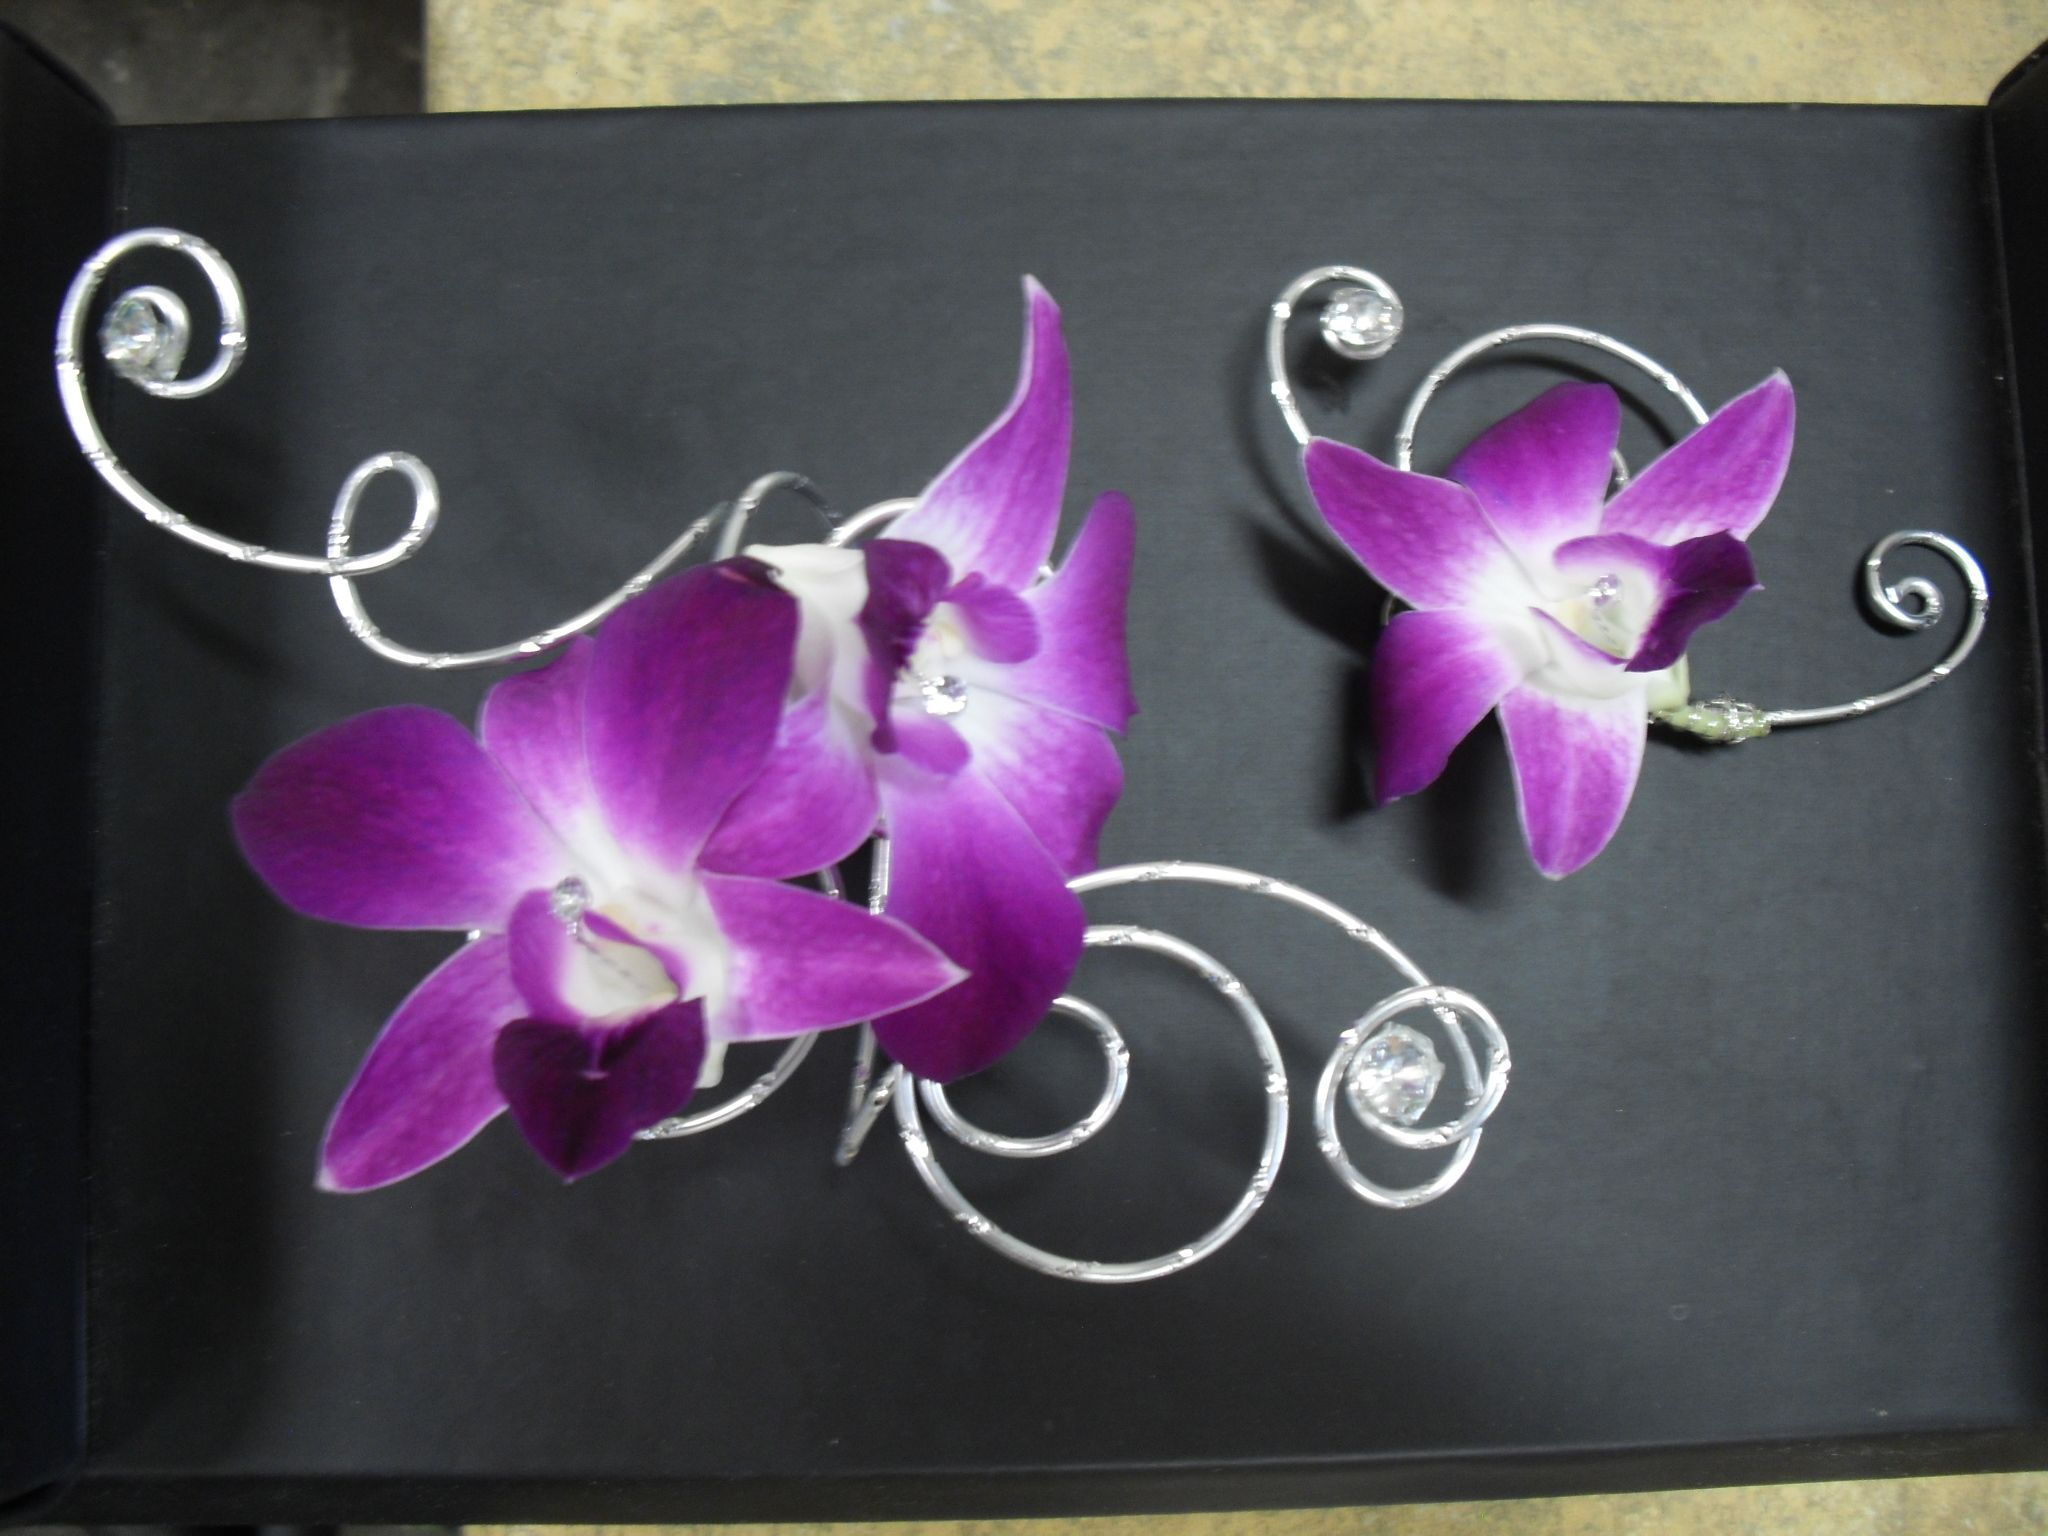 Purple and silver corsage and boutonniere for wedding and prom.